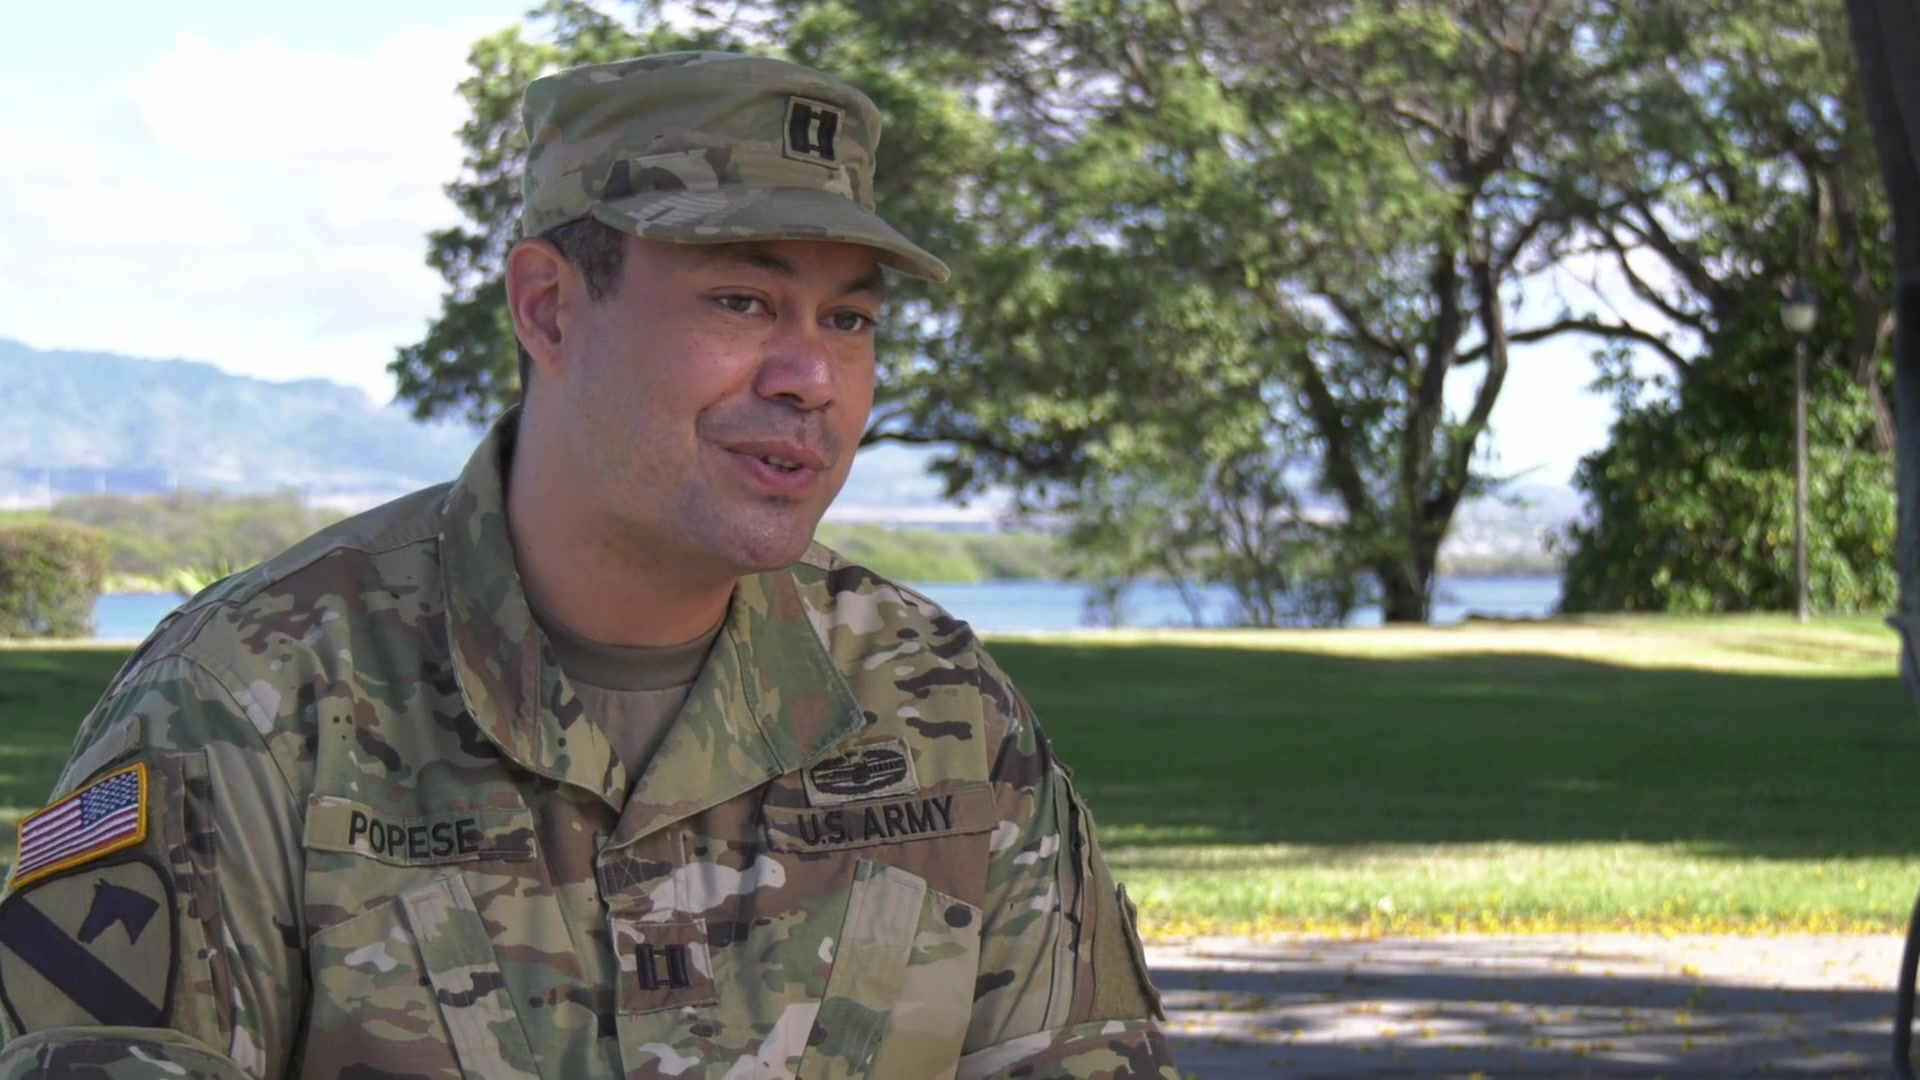 Capt. Vancamp Popese, 100th Battalion, talks about what service means to him and talks about his family's legacy of service. Also interviewed is his dad, Popese Popese Jr., talking about life in the military and why he served for his family.